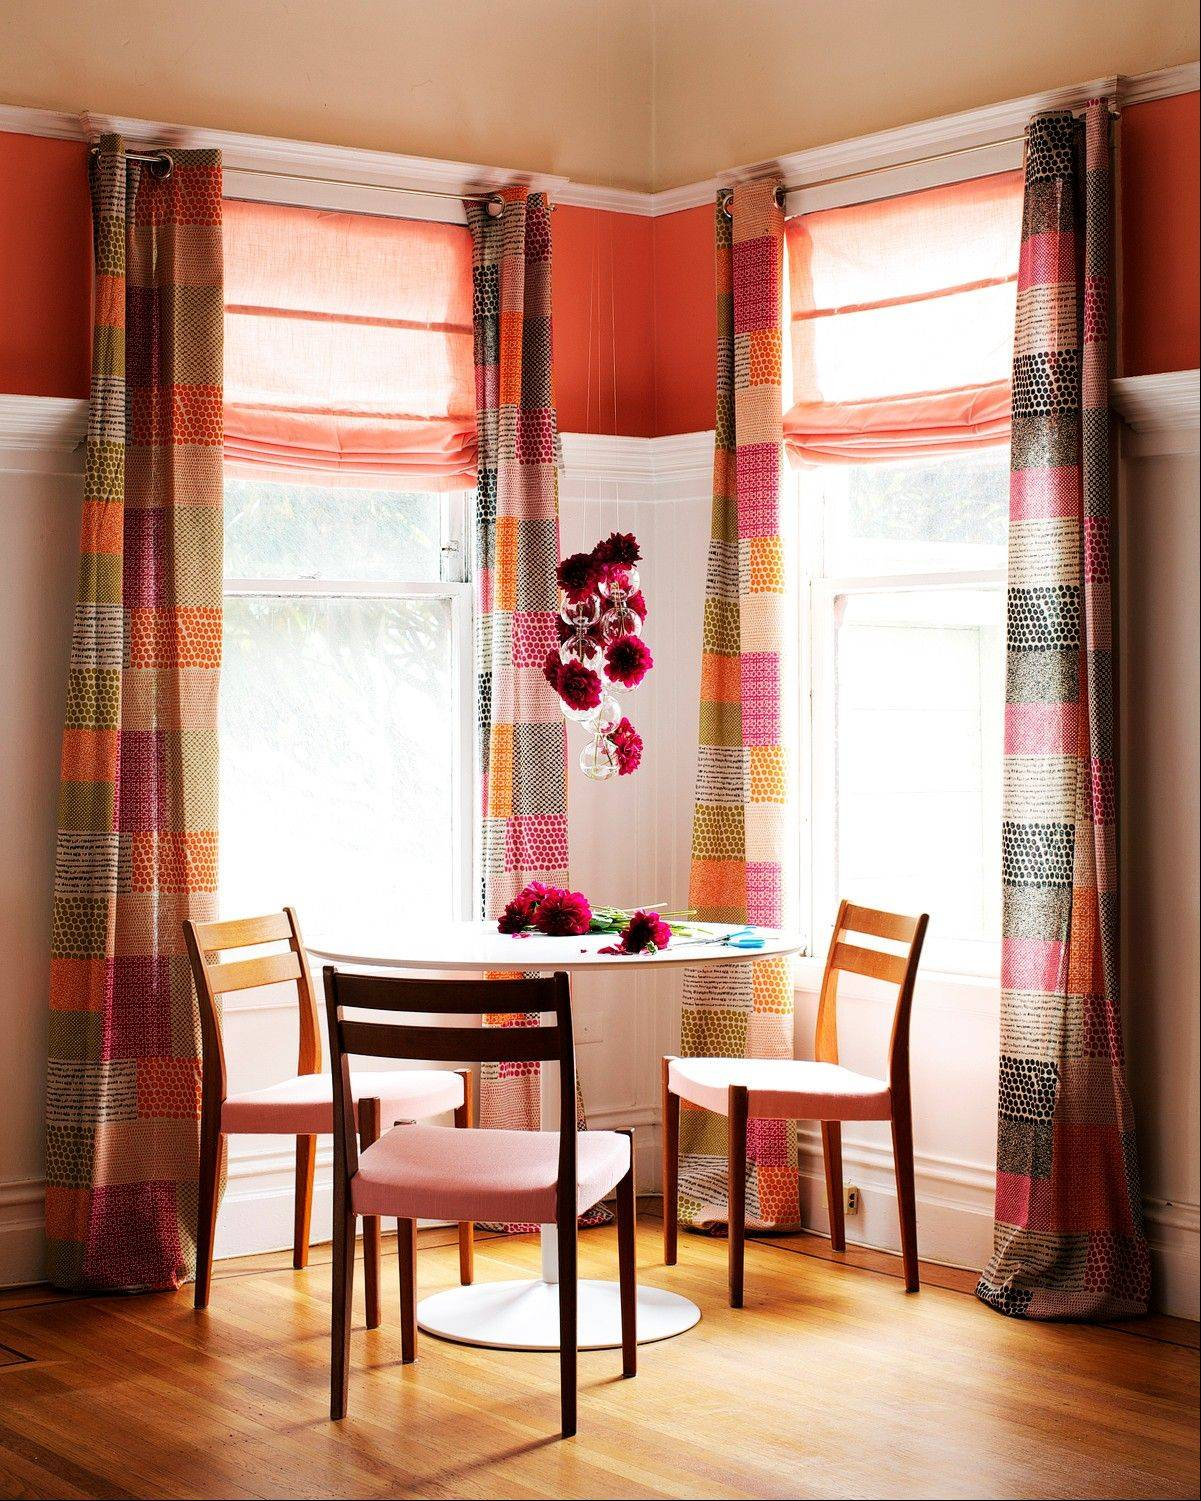 Colorful fabrics, such as theses drapes, are great for making an aprtment yours, especially if you are not allowed to paint walls.